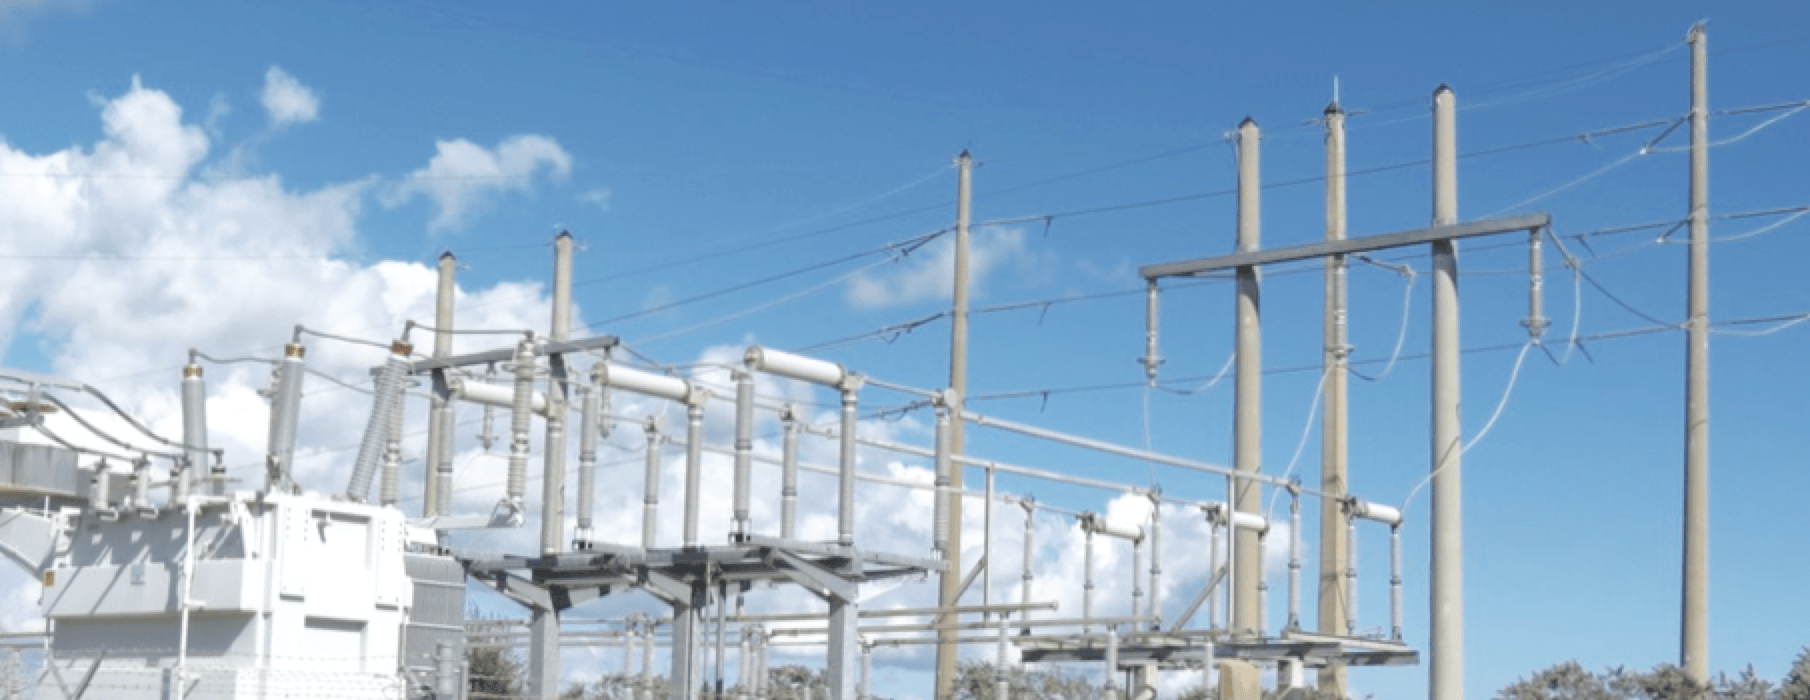 surge protection Surge Protection of Substations Example of substation with line entrance arresters primary arresters secondary arresters and OHGW protection